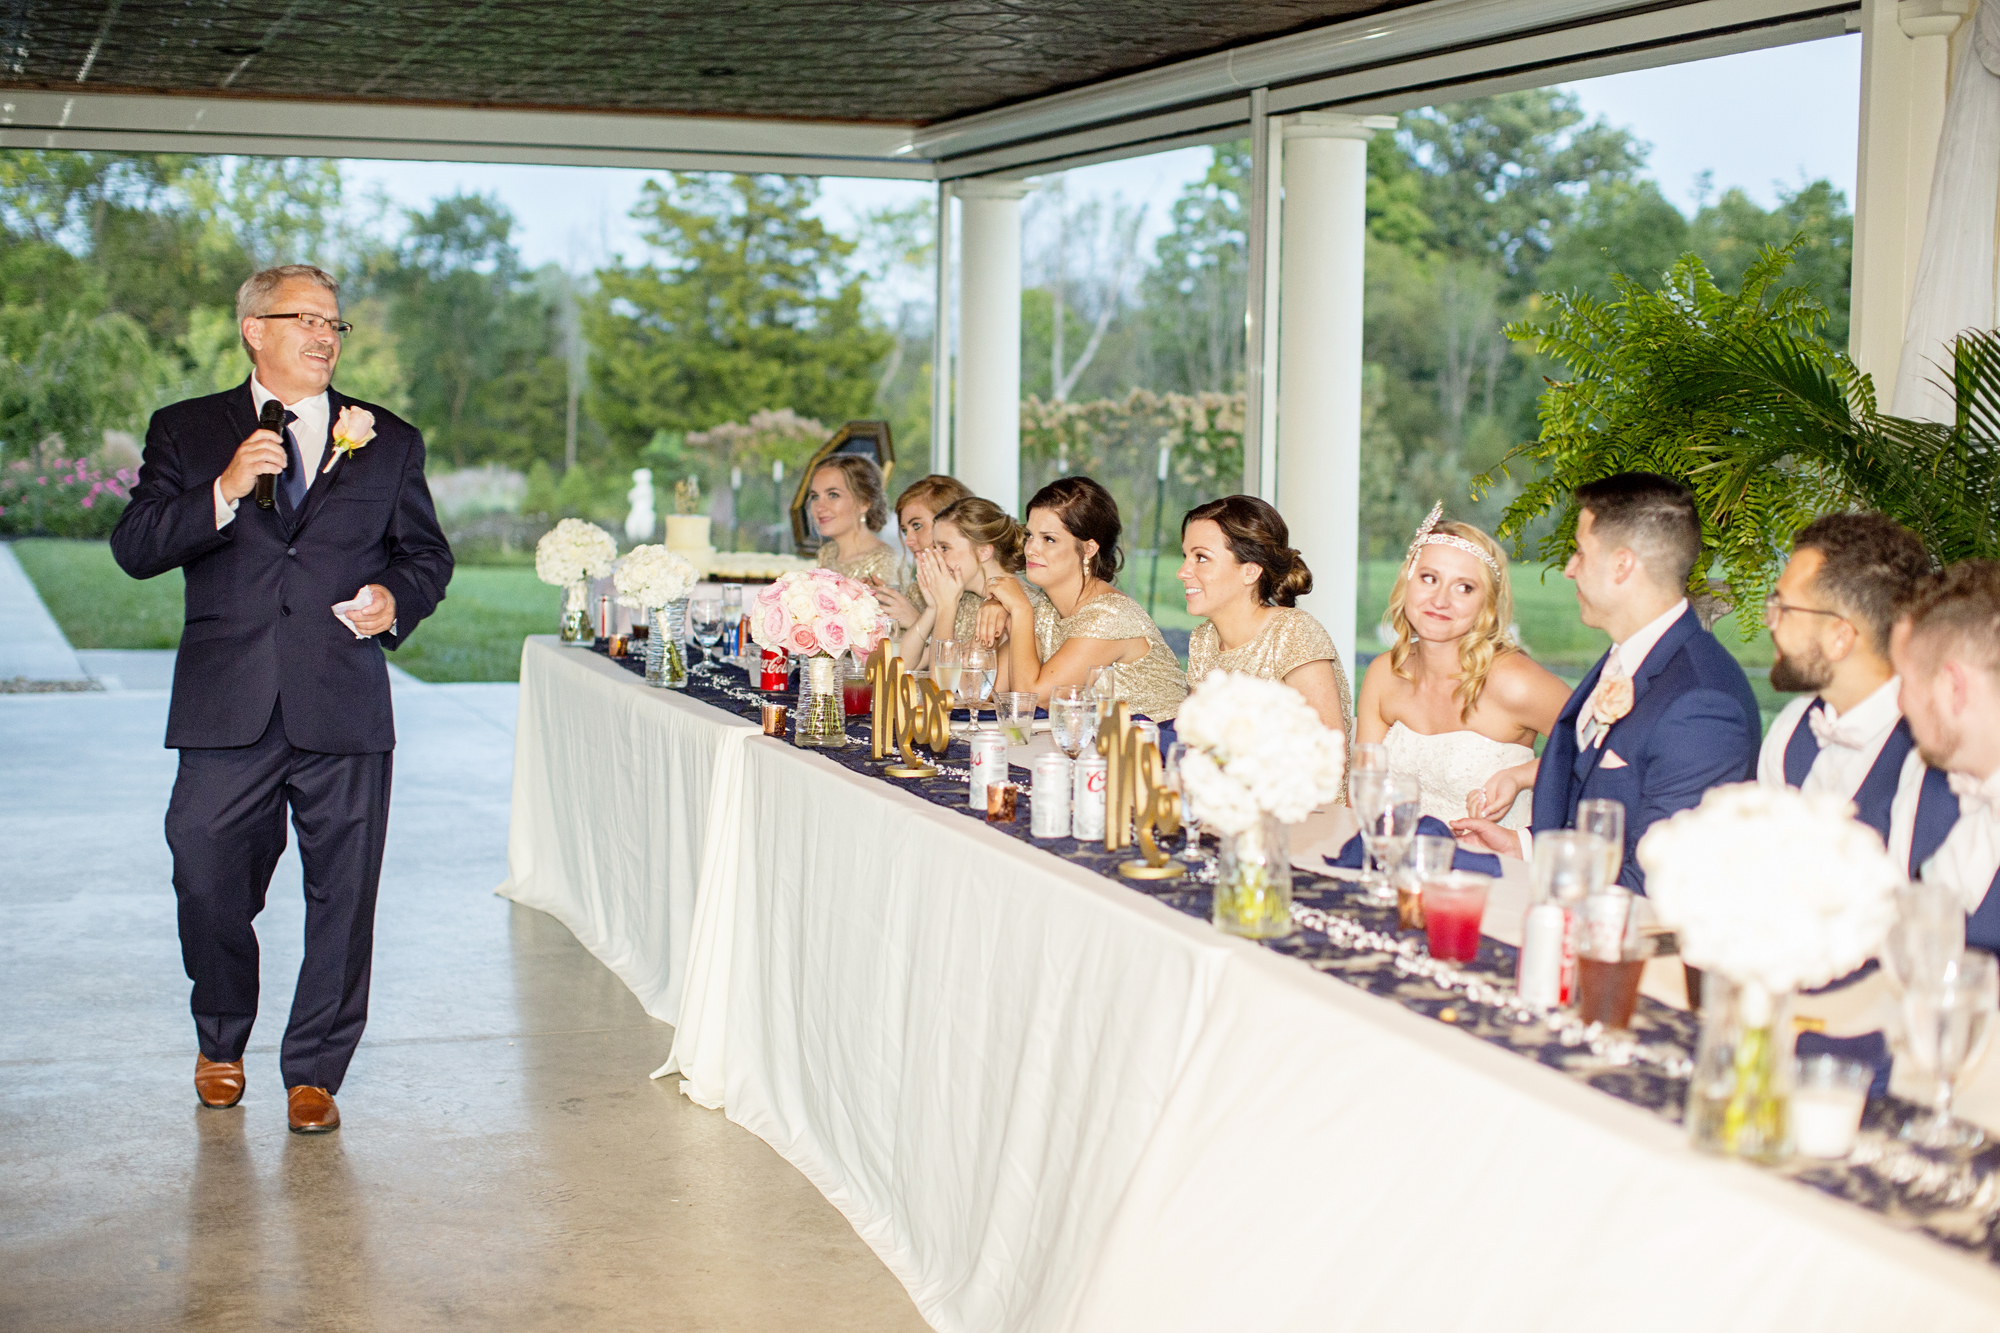 Seriously_Sabrina_Photography_Dayton_Ohio_Great_Gatsby_Wedding_Cedar_Springs_Pavillion_Harper_110.jpg